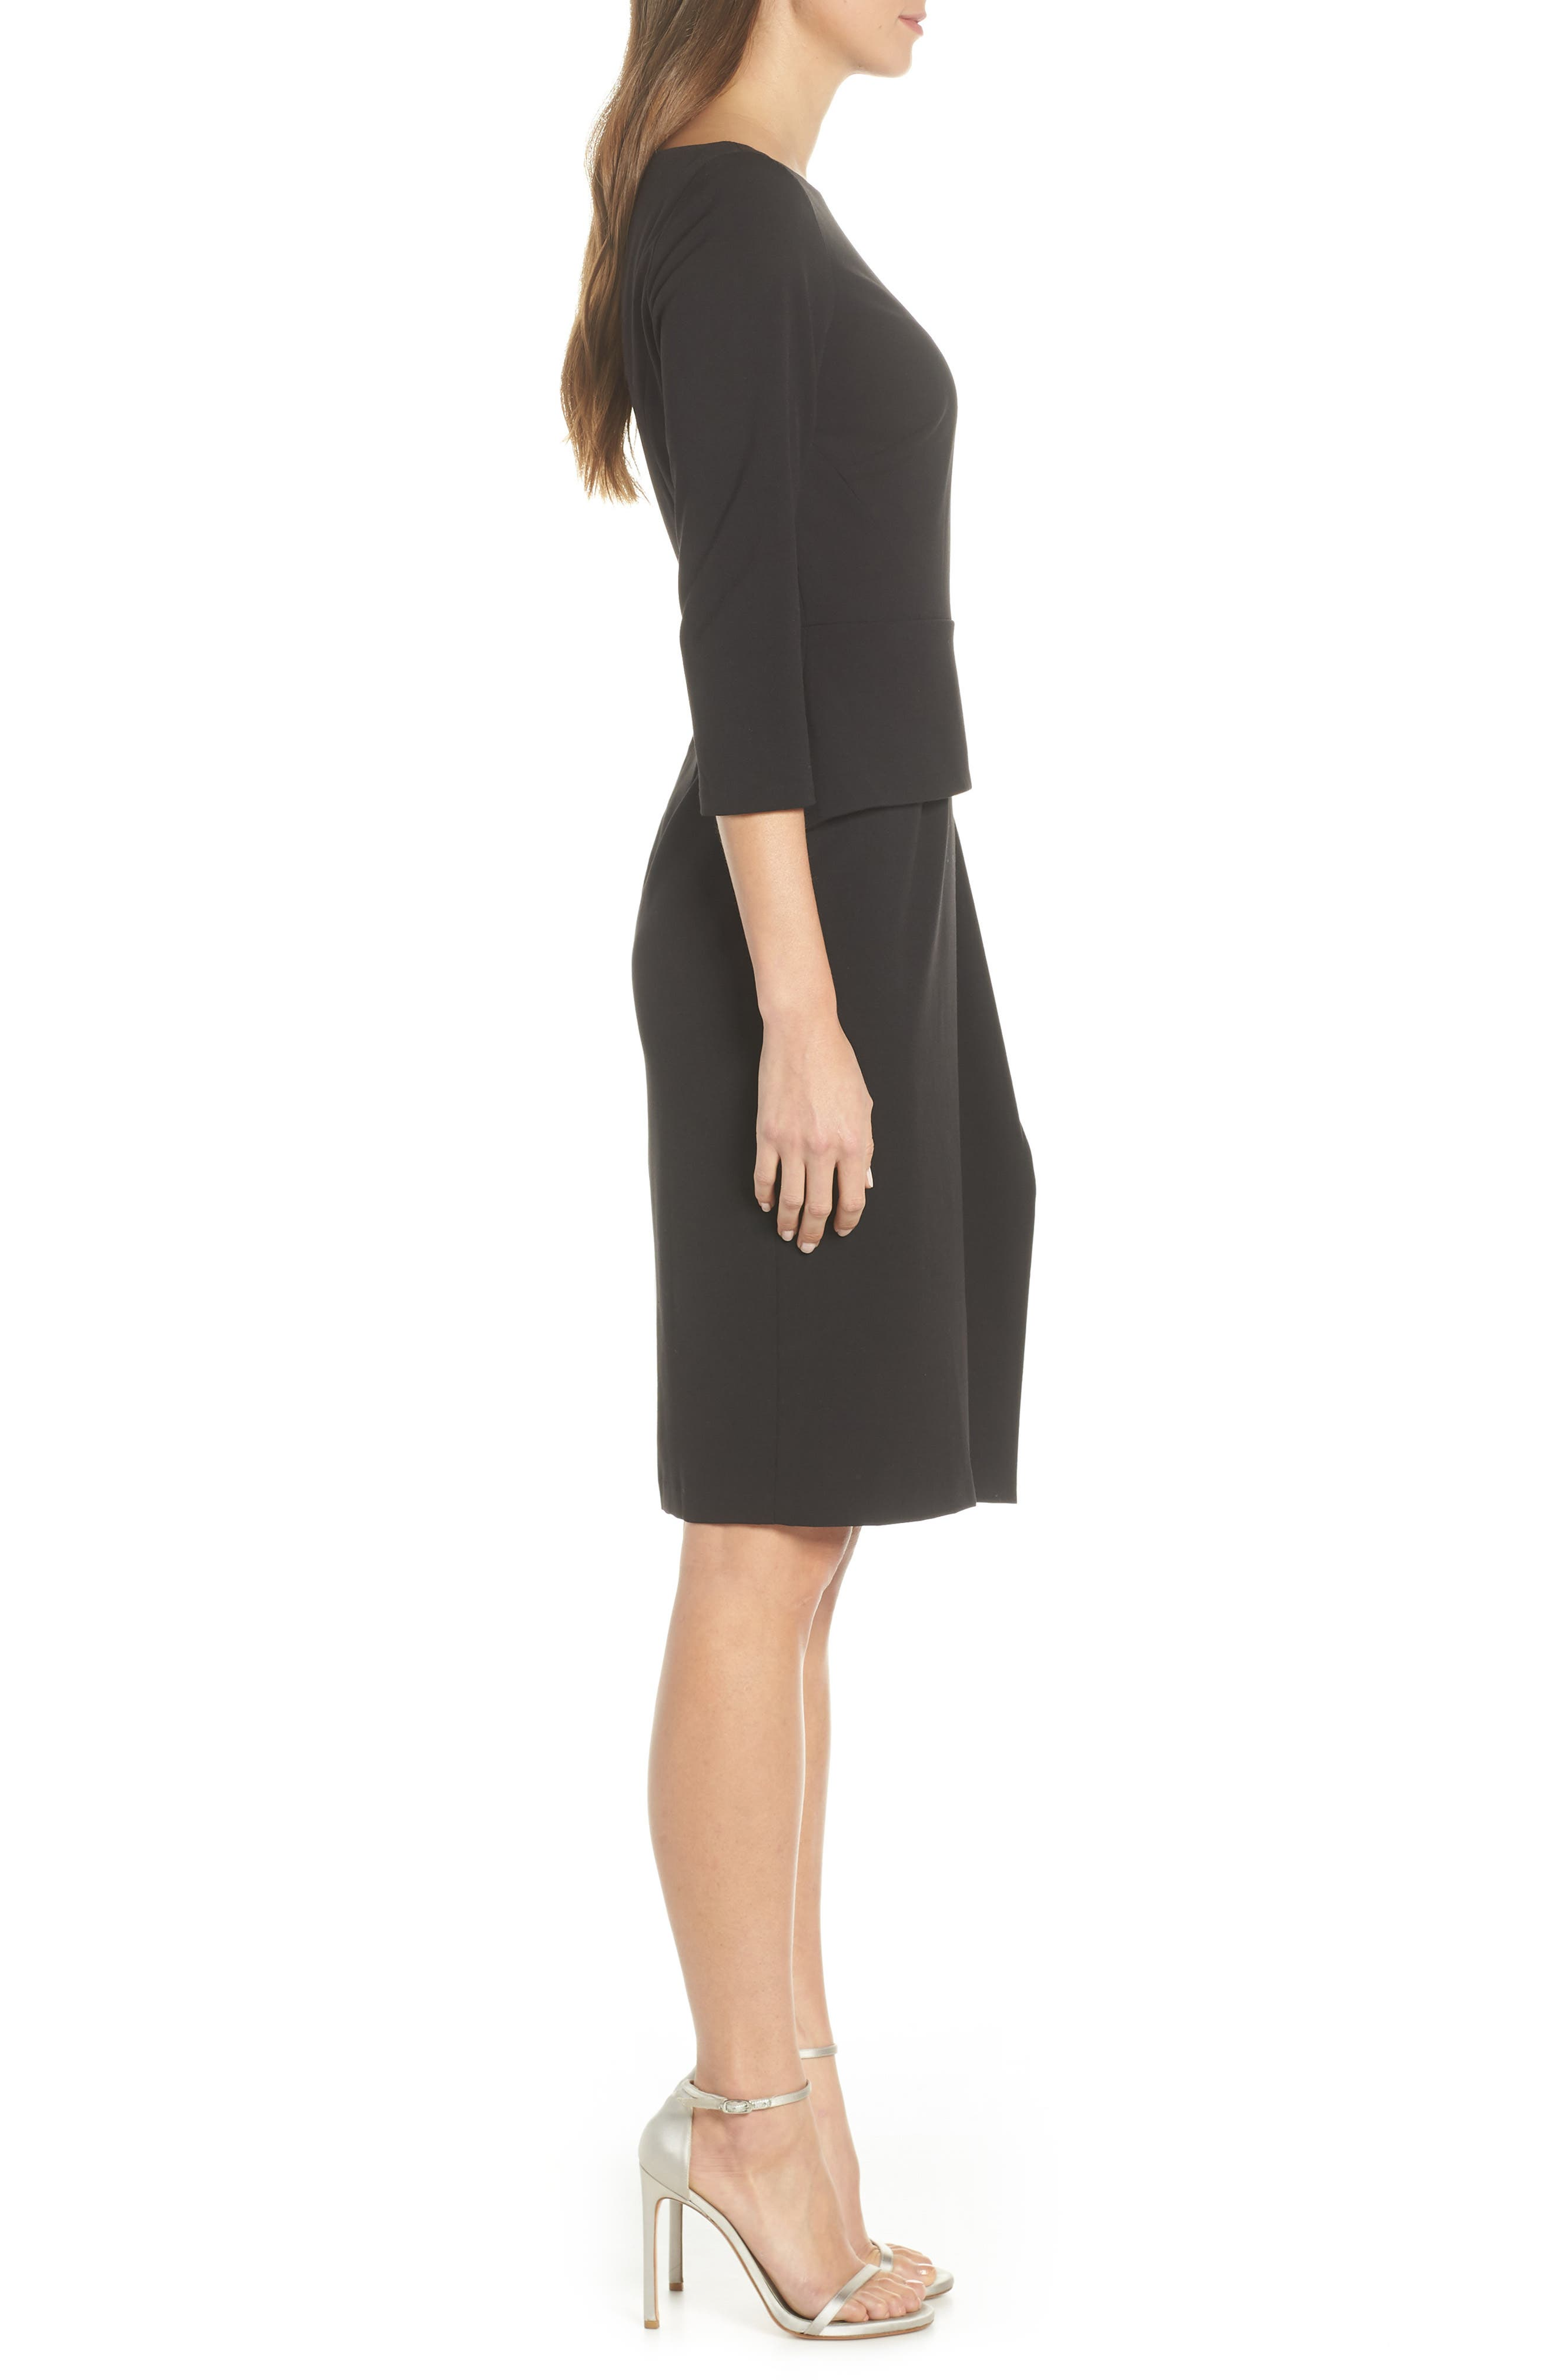 VINCE CAMUTO, Angled Ruffle Sheath Dress, Alternate thumbnail 4, color, BLACK